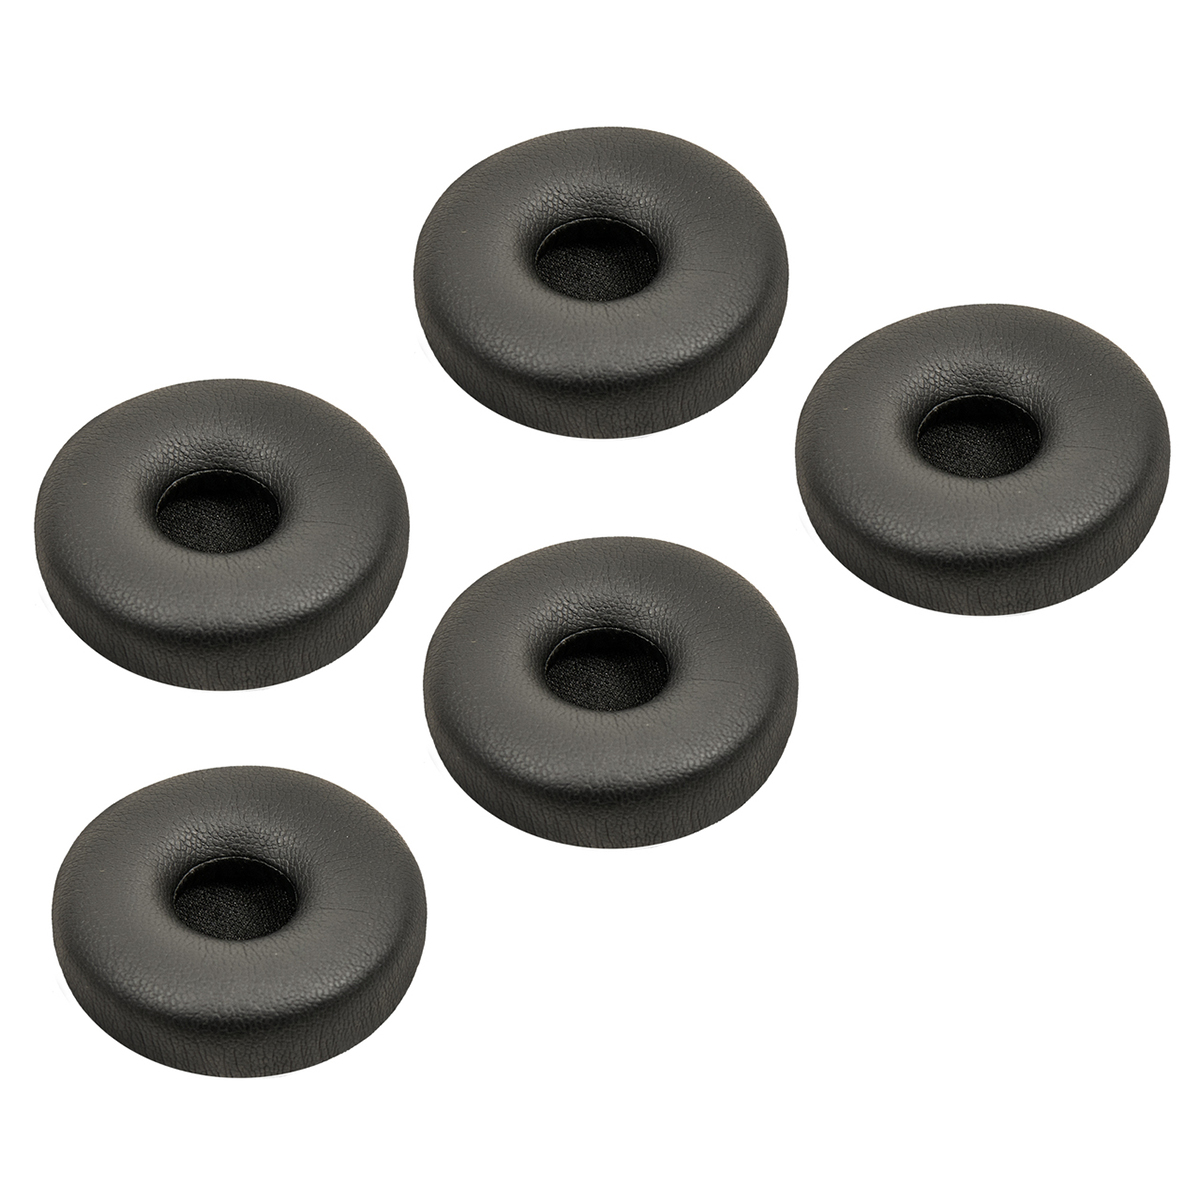 Philips ACC6005 Speechone Headset Spare Ear Cushions Pack of 5